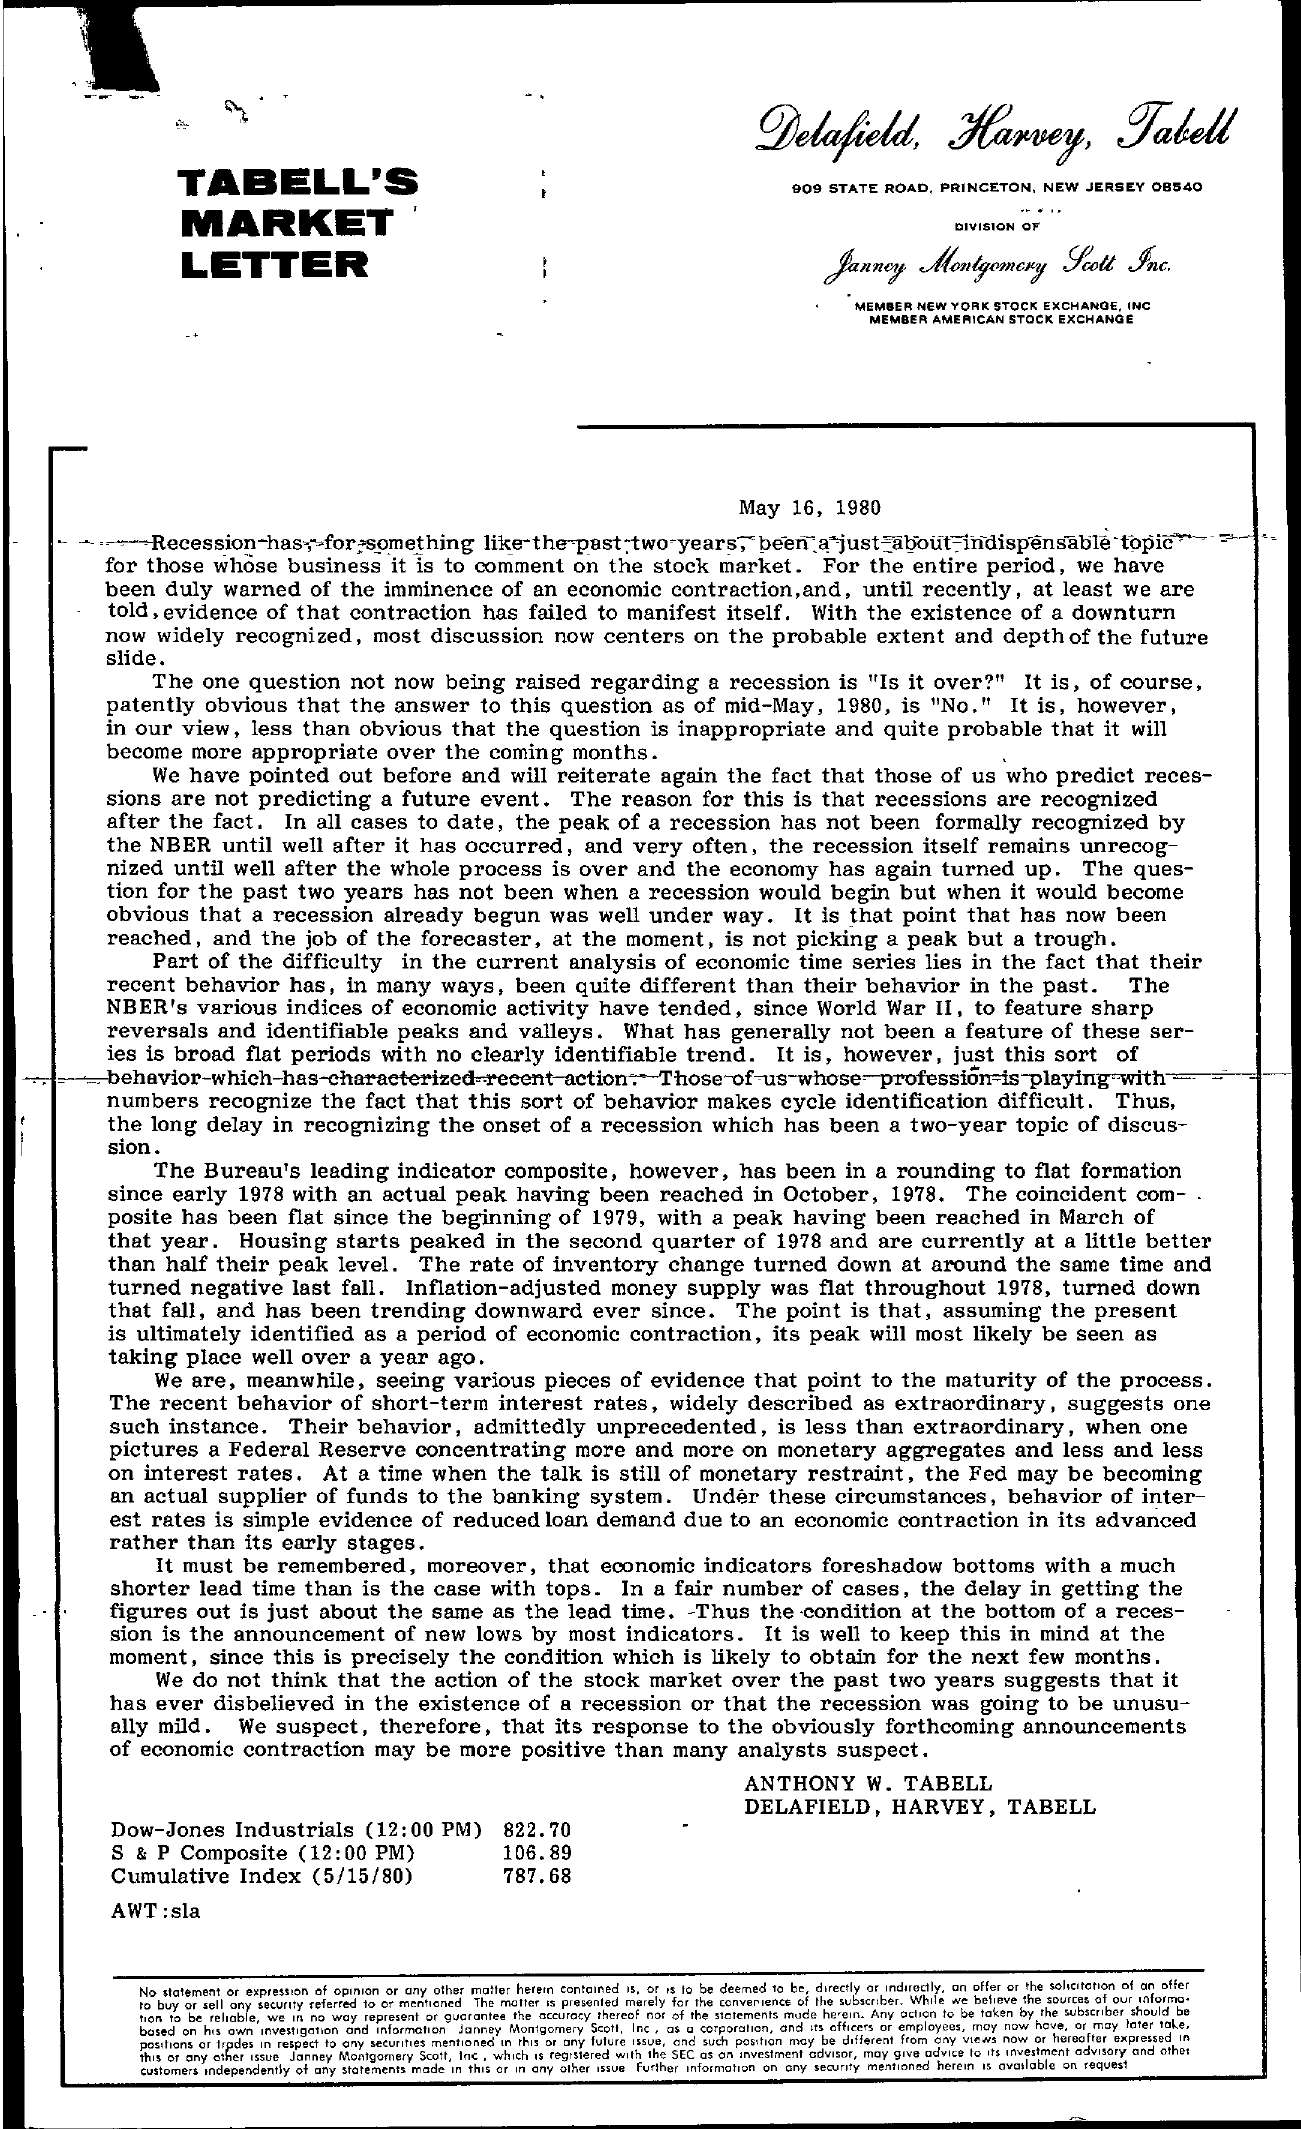 Tabell's Market Letter - May 16, 1980